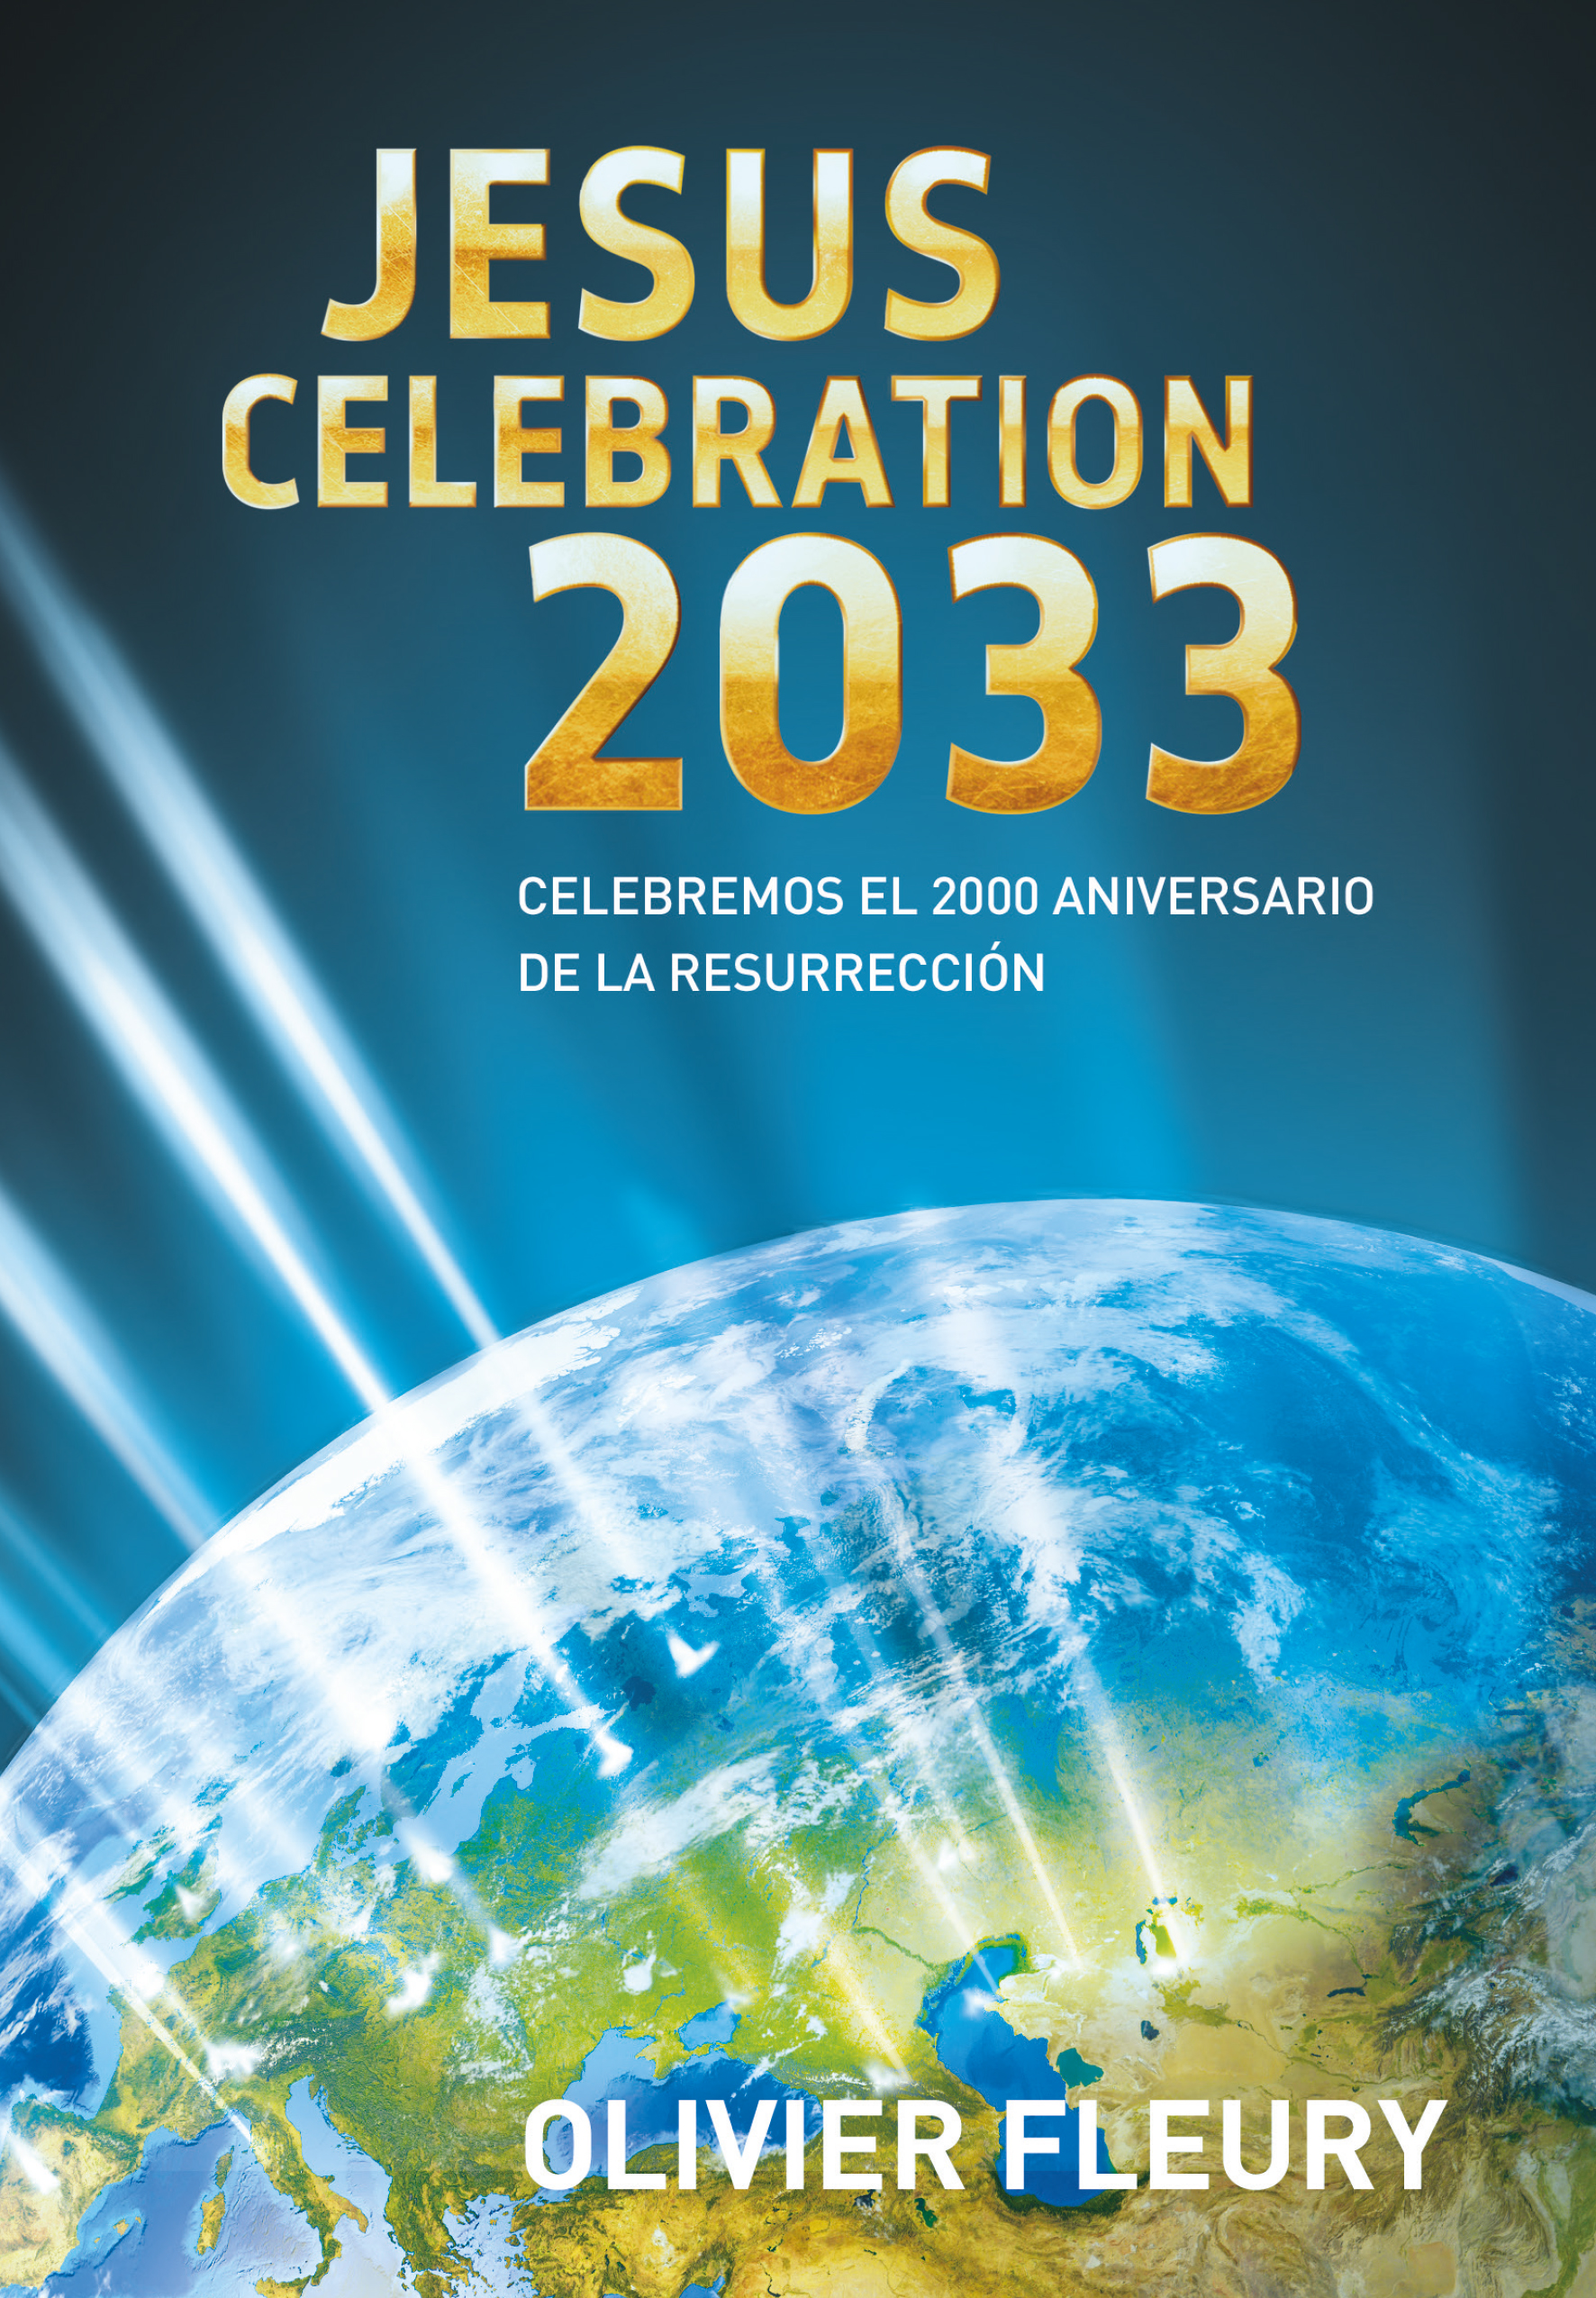 jesus-celebration-2033-cover_spanish-web.jpg